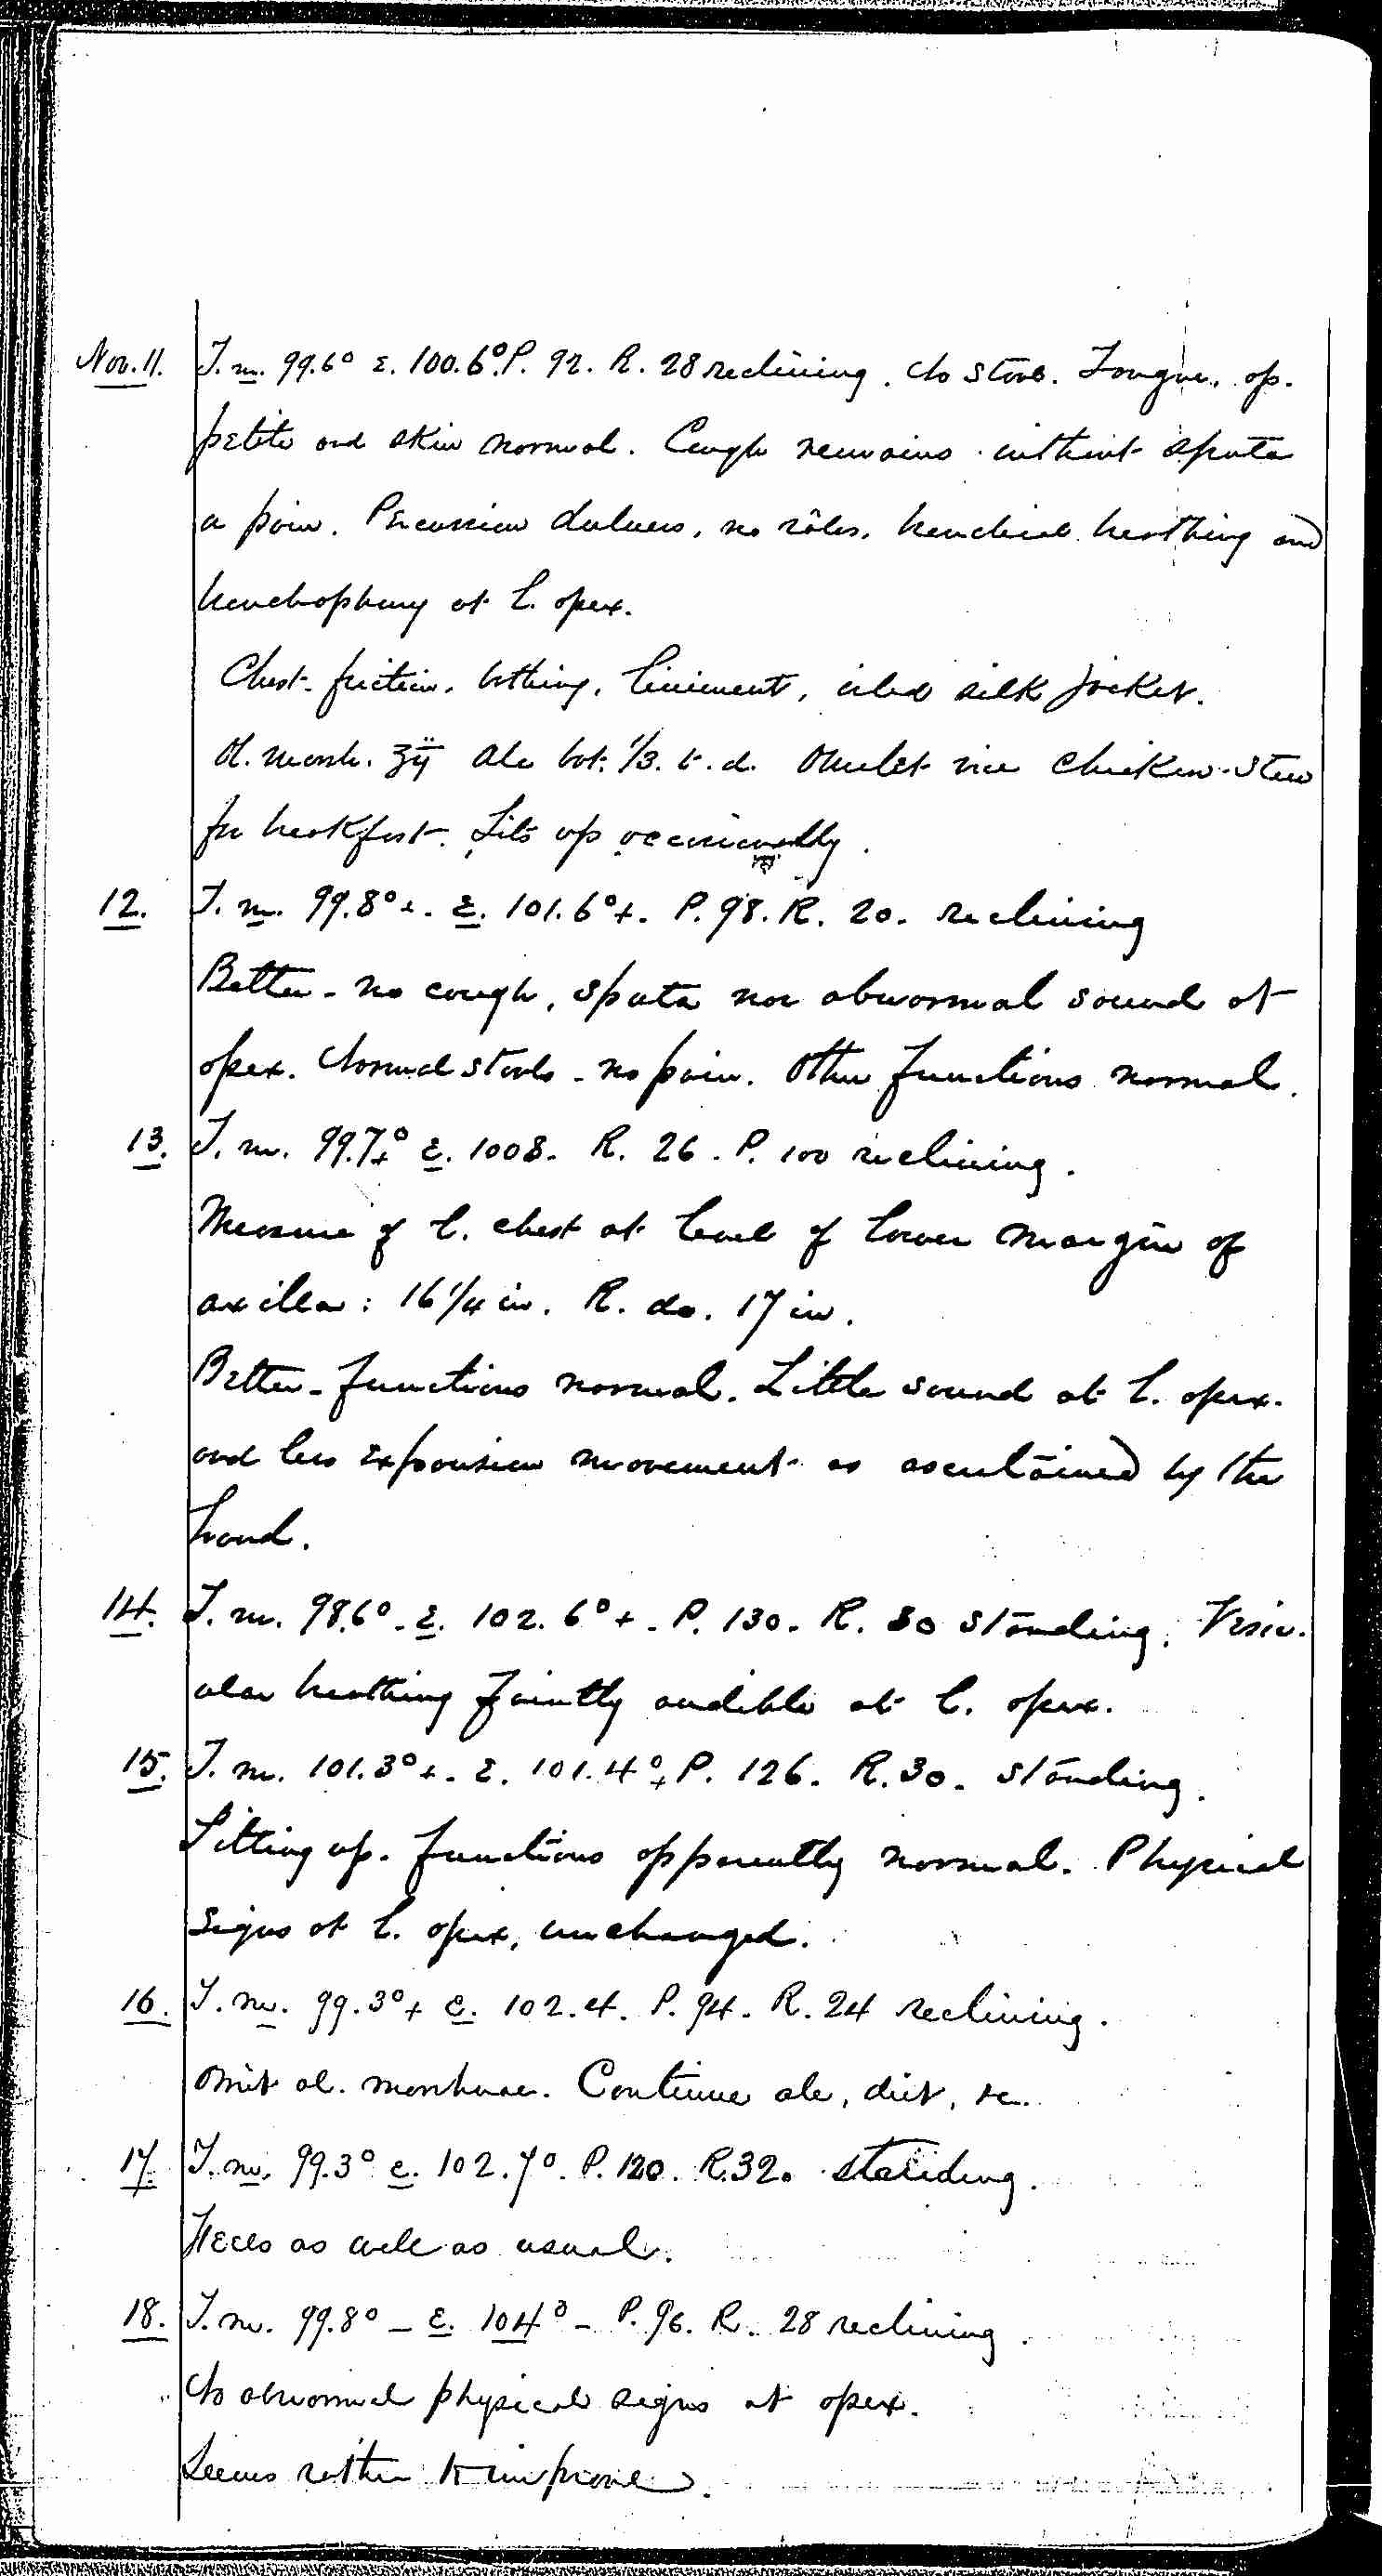 Entry for Richard Forn (page 6 of 21) in the log Hospital Tickets and Case Papers - Naval Hospital - Washington, D.C. - 1868-69